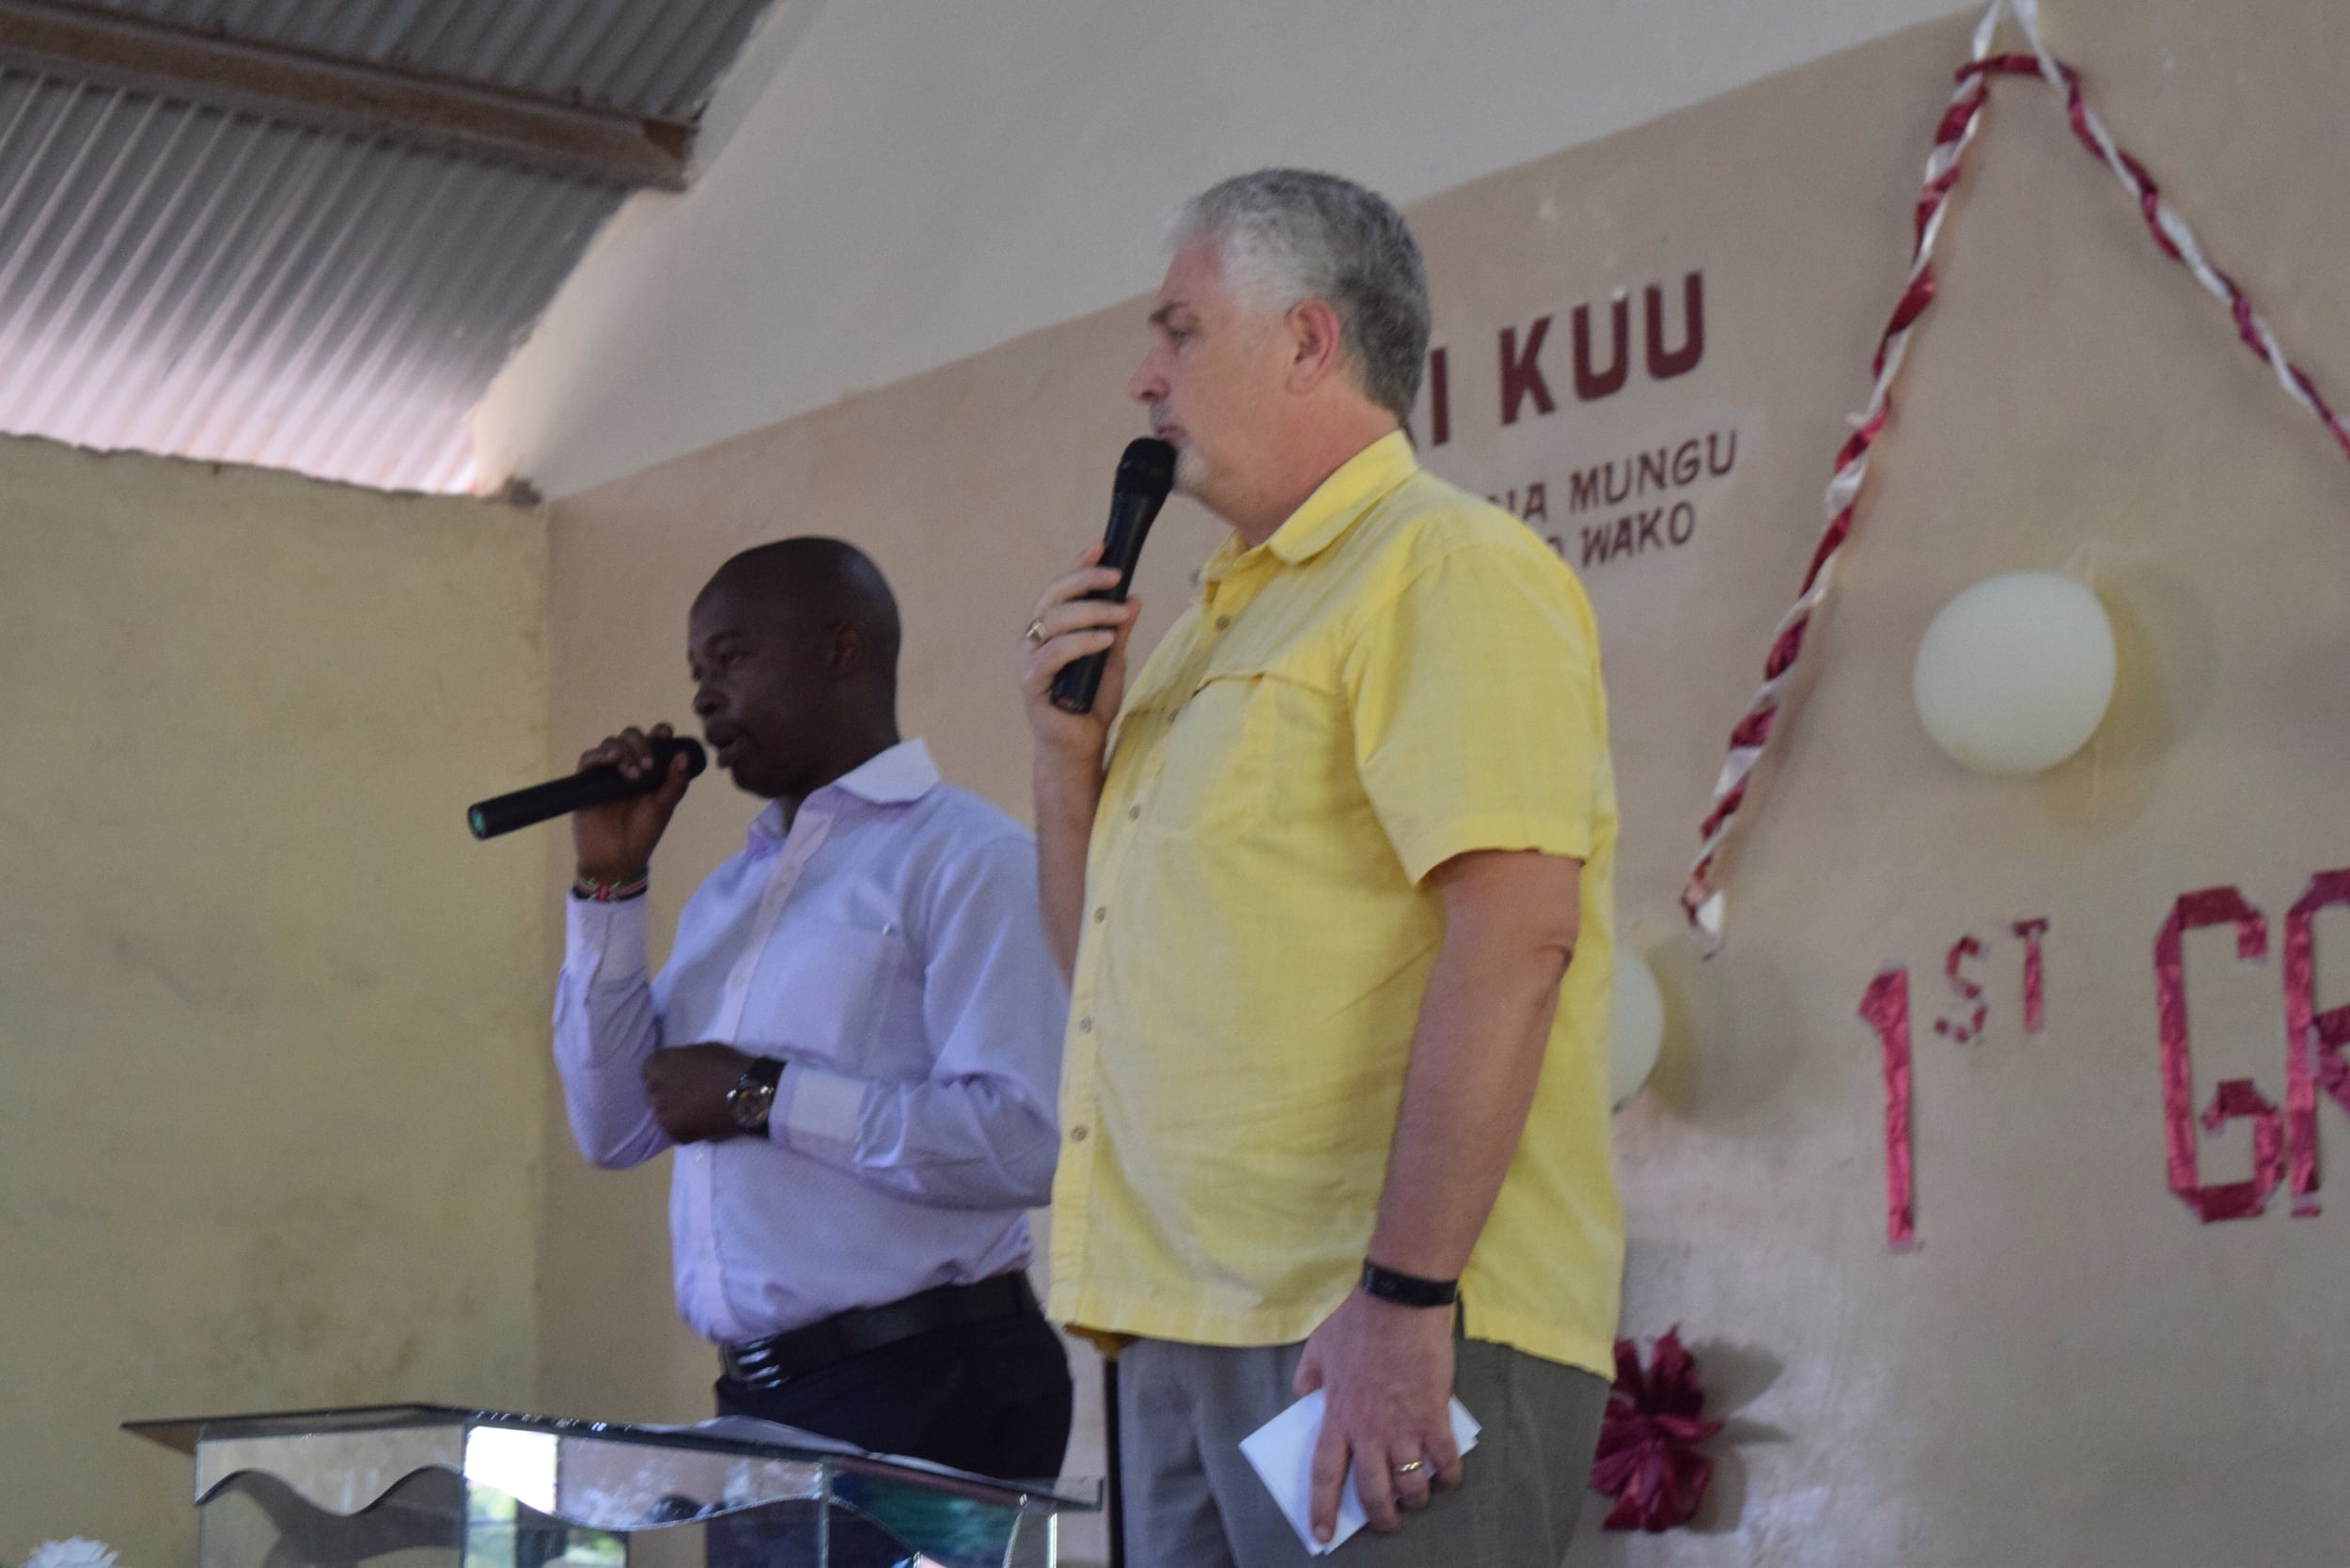 Pastor Mark addresses the students, with Teacher James interpreting for those Kenyans who don't understand English (or southern American accents).